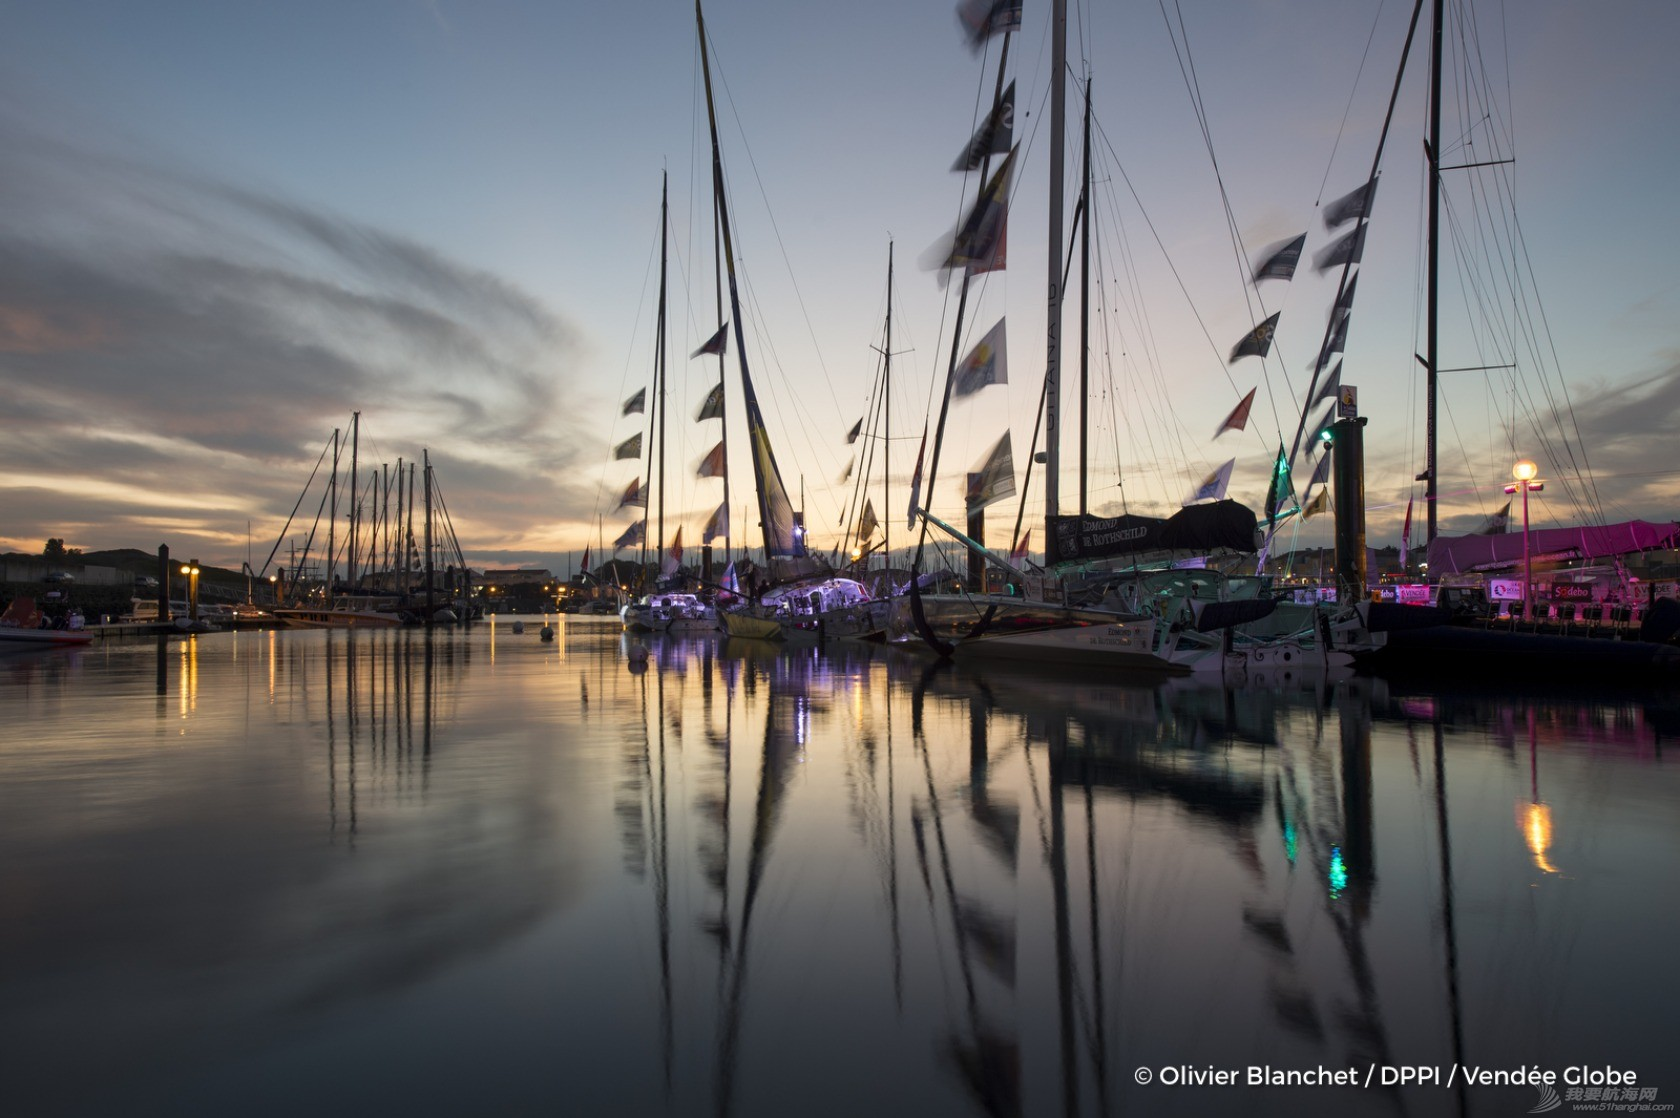 谁将赢得第8届旺代环球(Vendee Globe)? illustration-of-pontoons-by-night-during-prestart-of-the-vendee-globe-in-les-sables-d-olonne-france-on-october-27th-2016-photo-olivier-blanchet-dppi-vendee-globeillustration-de-nuit-des-pontons-du-vend.jpg